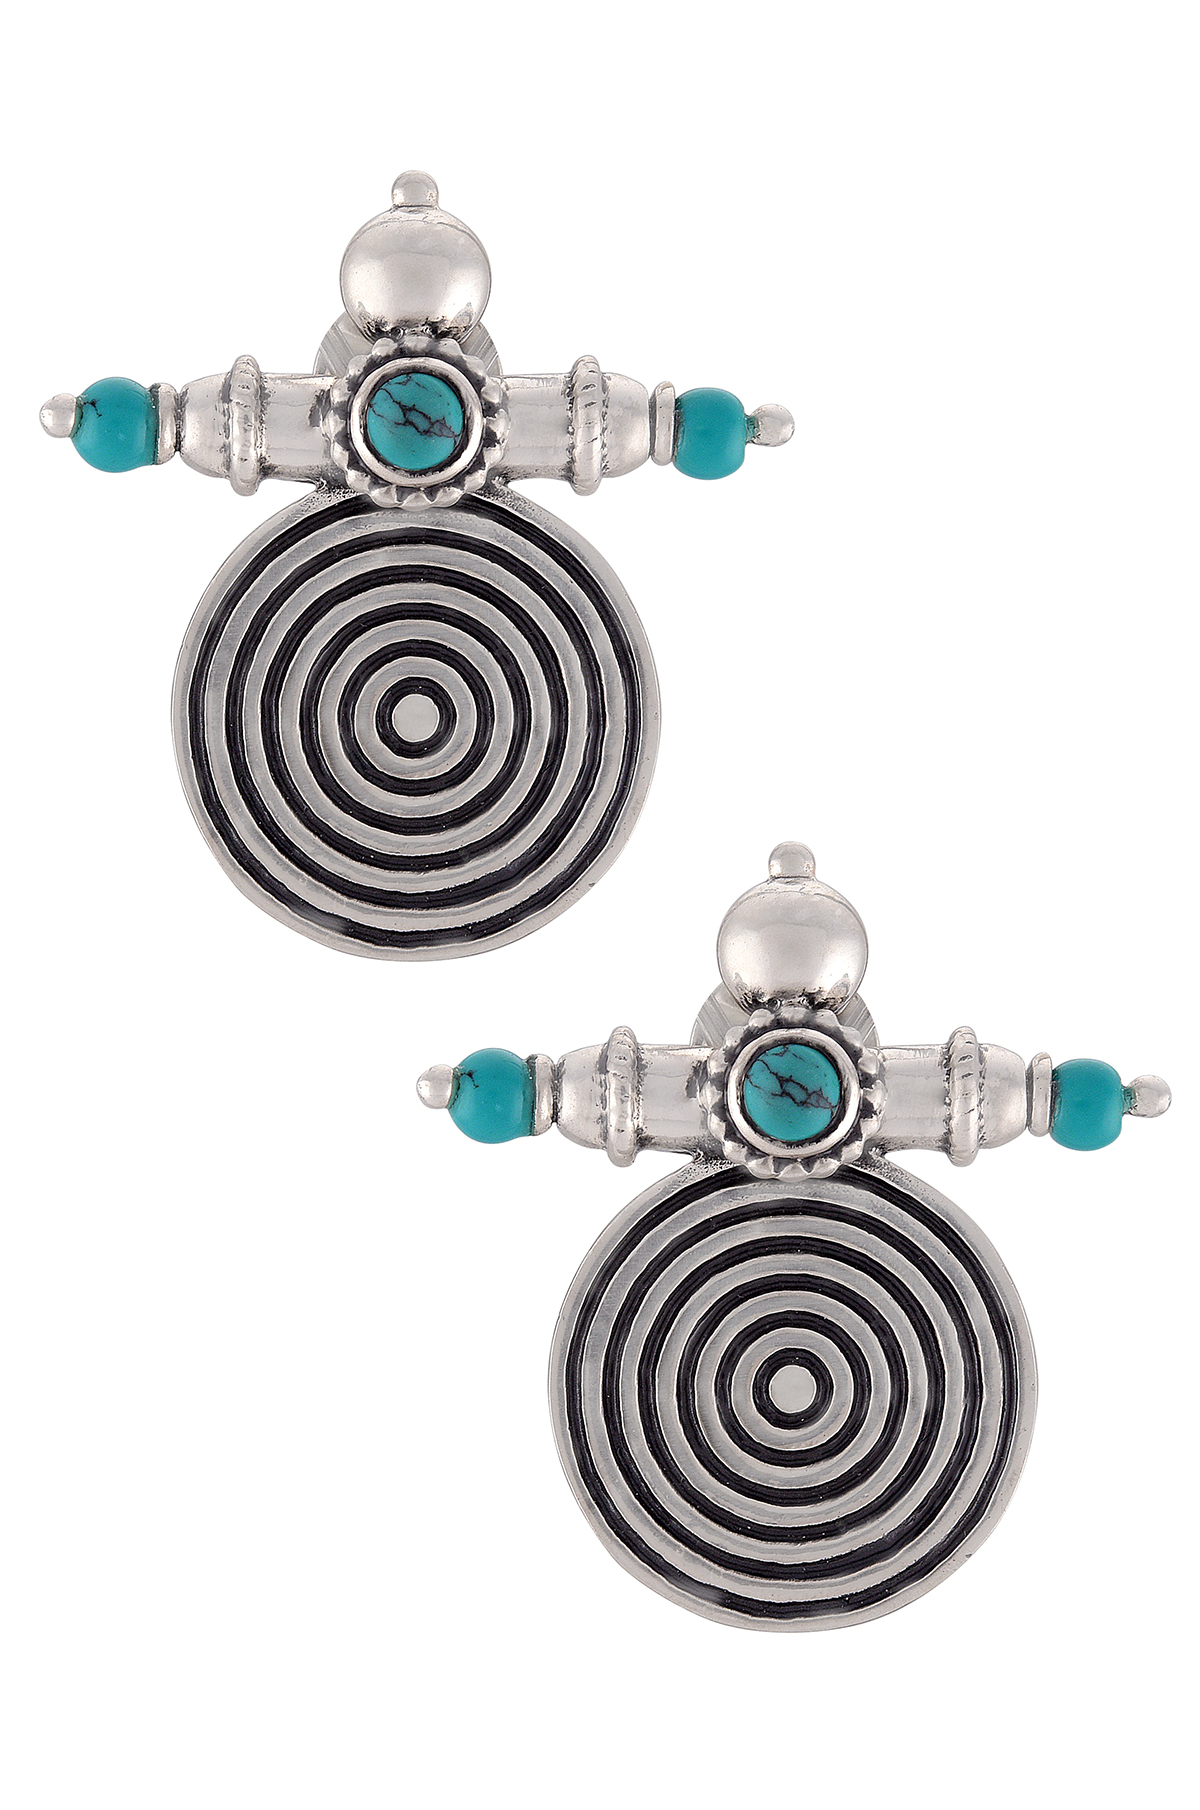 Silver Oxidised Turquoise Concentric Taveez Ear Studs